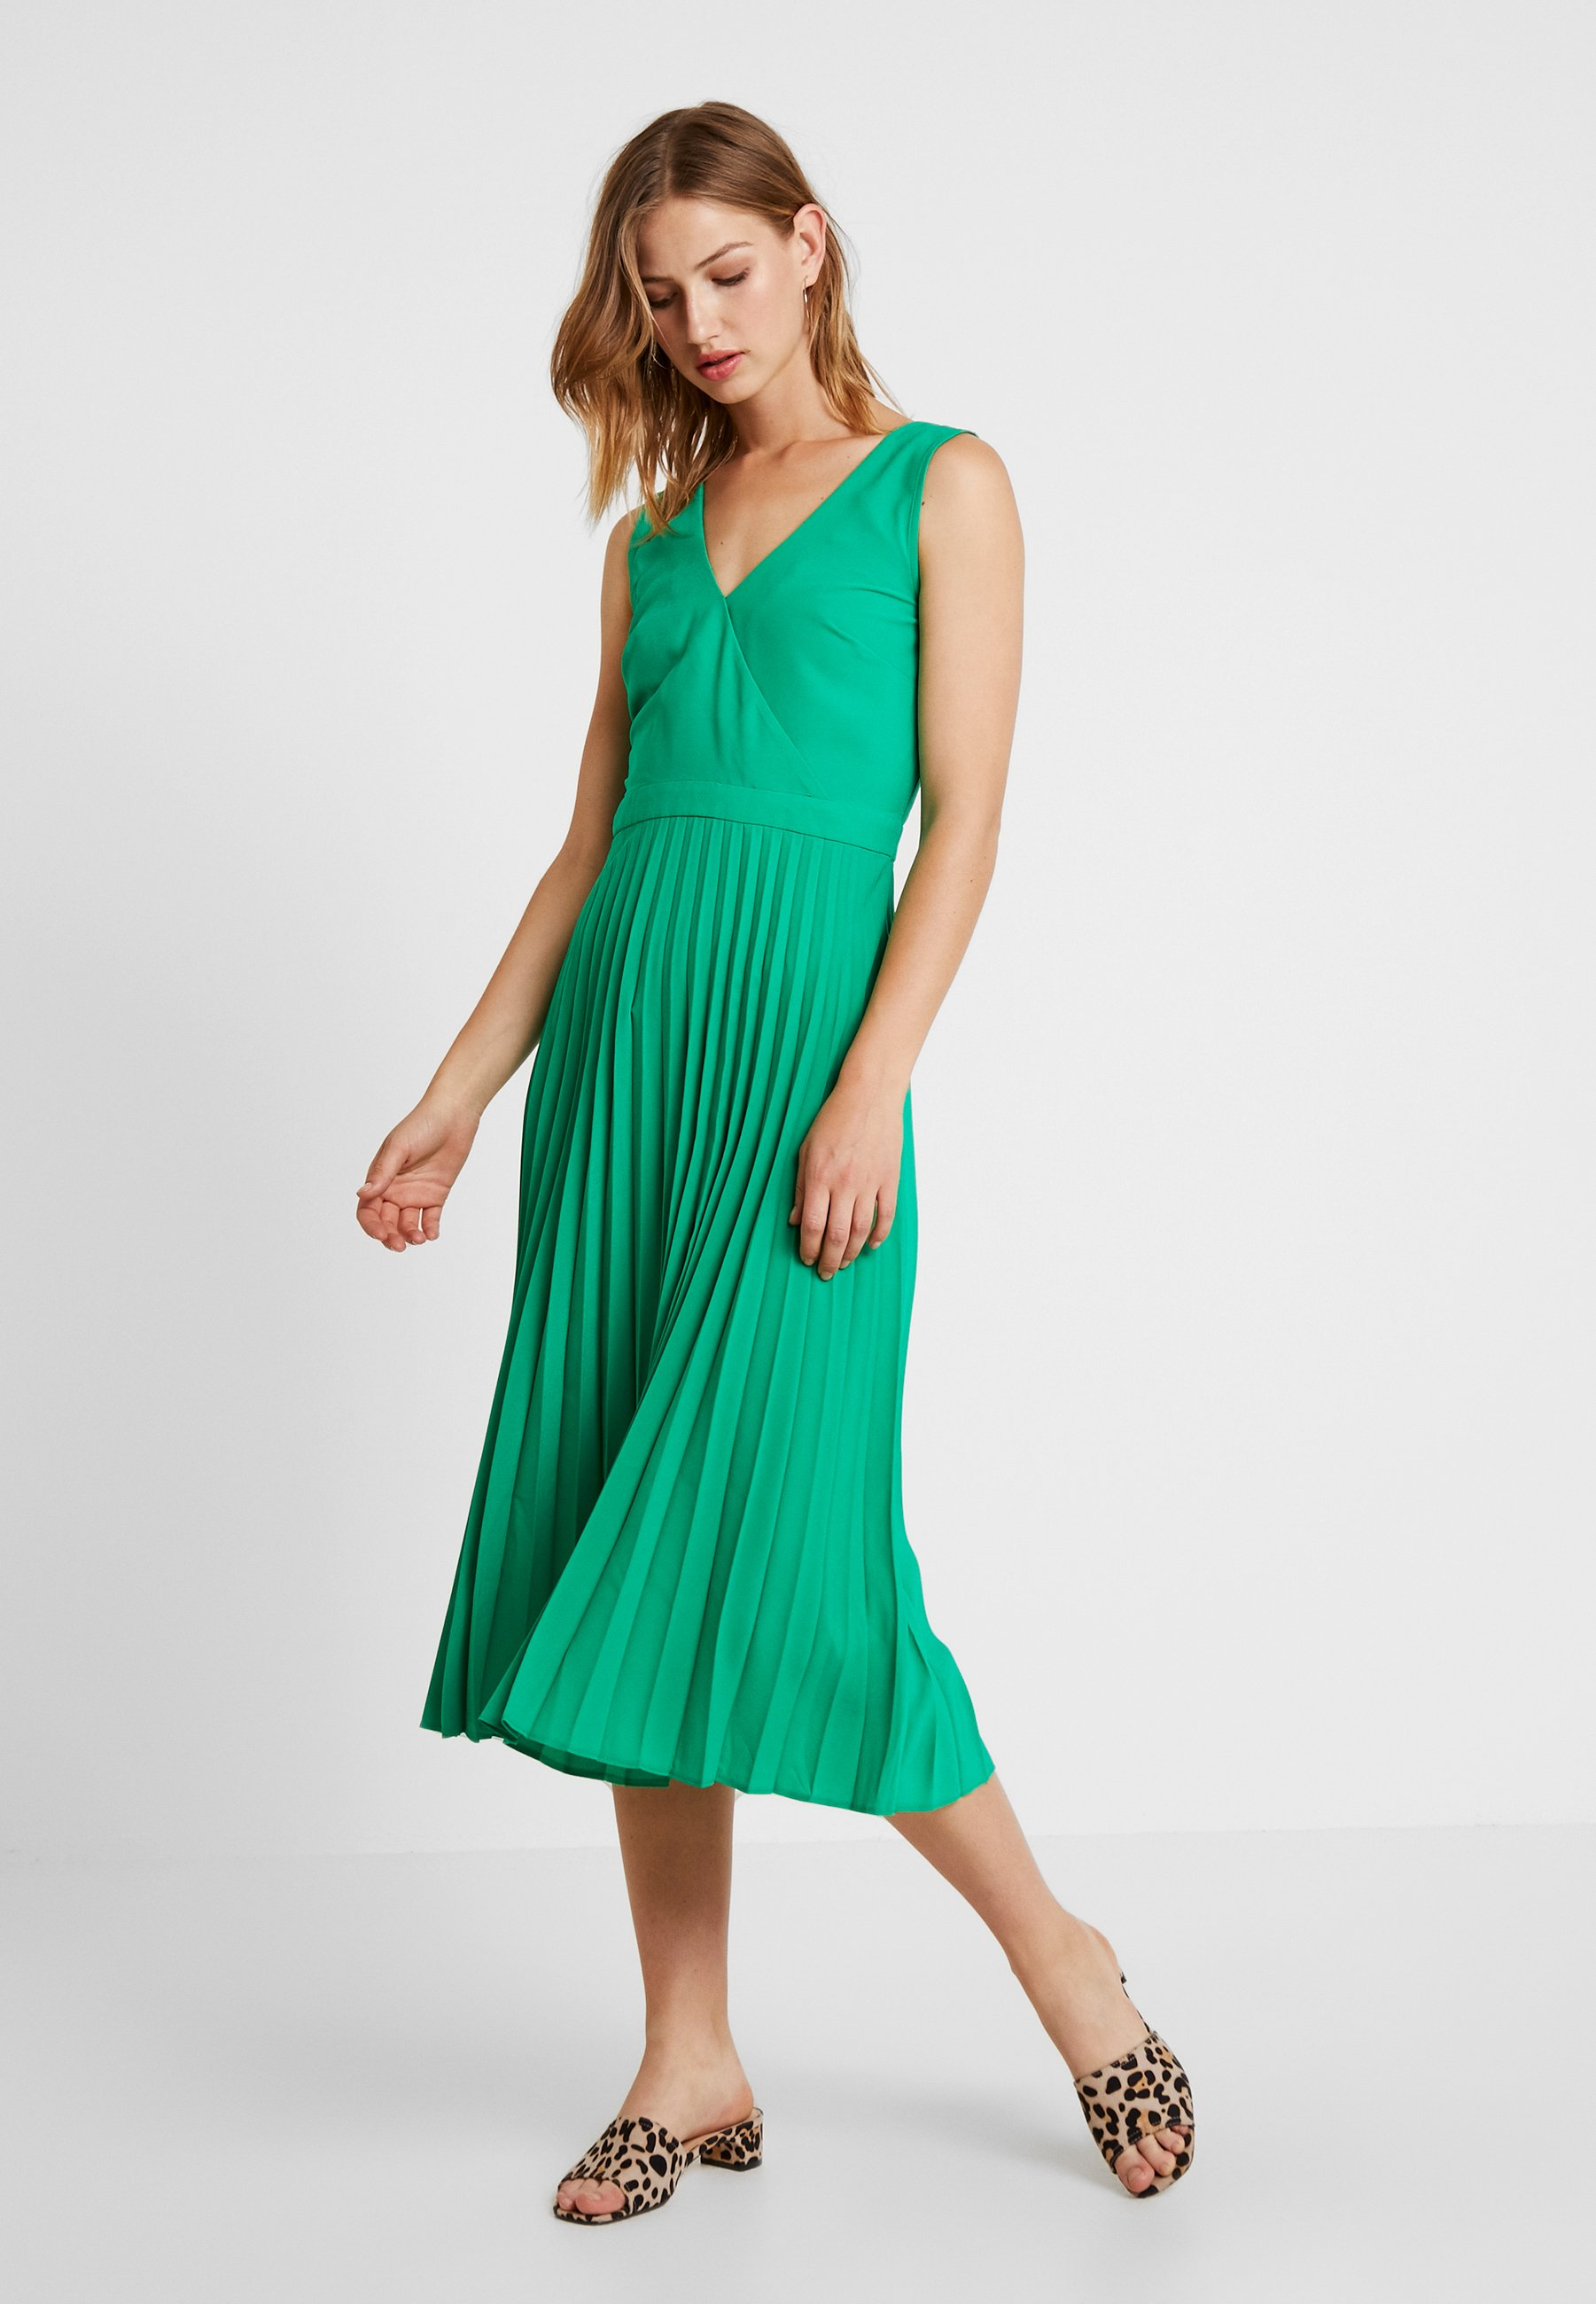 Warehouse Pleated DressRobe Green DressRobe Warehouse Pleated Longue BxeQoCWrdE